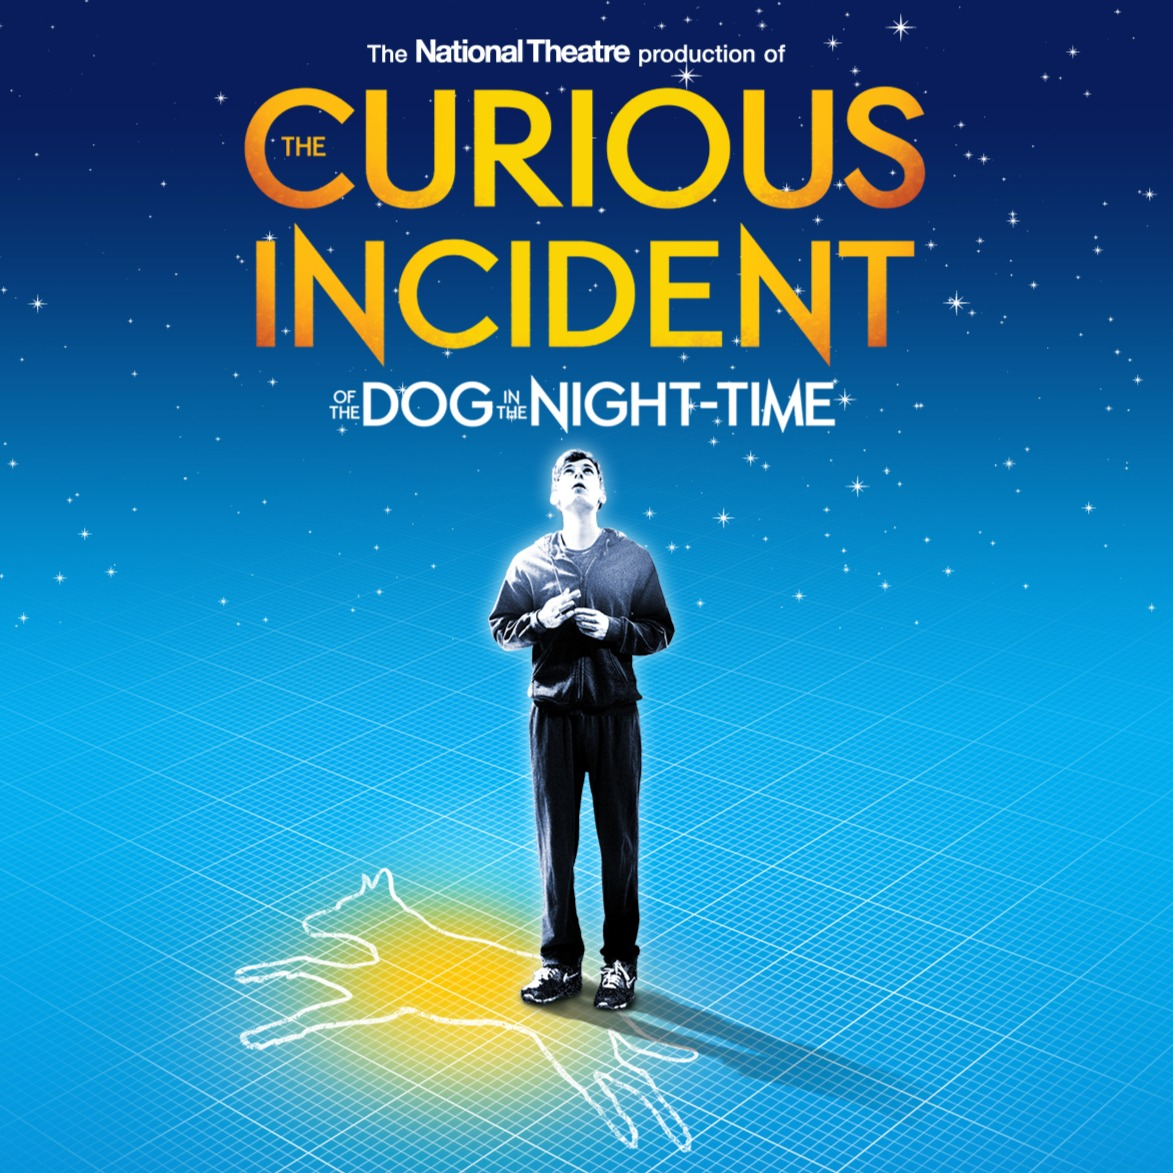 The Curious Incident of the Dog in the Night-Time at Princess Of Wales